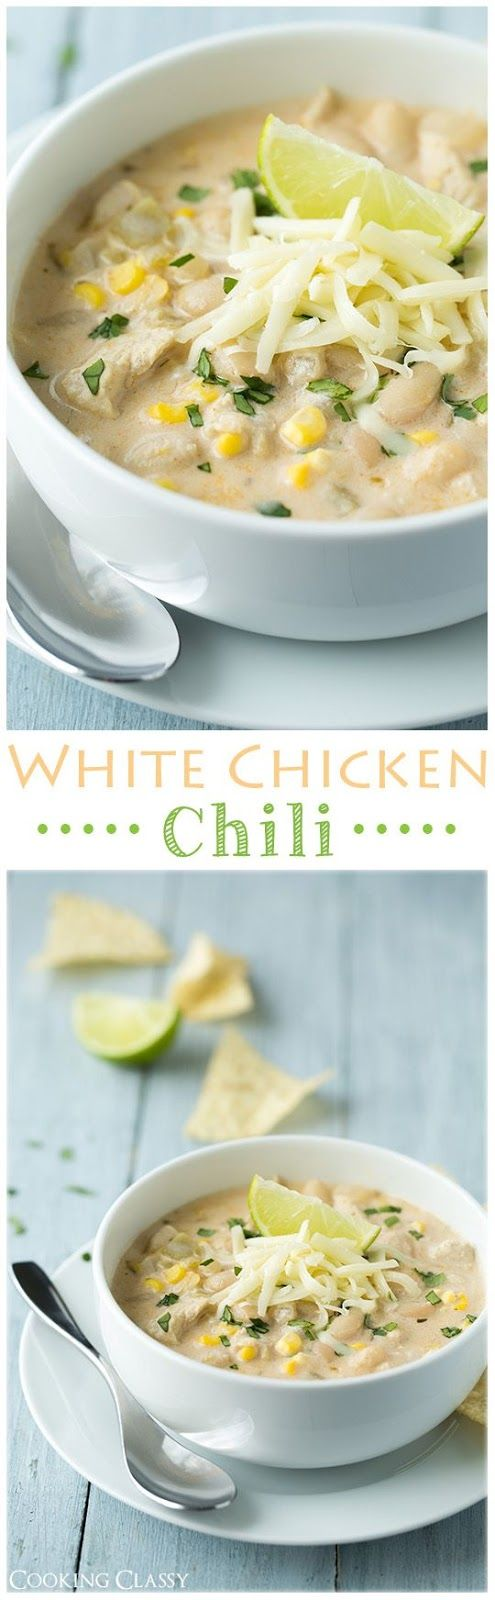 White Chicken Chili Soup Recipe | Cooking Classy - The BEST Homemade Soups Recipes - Easy, Quick and Yummy Lunch and Dinner Family Favorites Meals Ideas #soup #souprecipes #homemadesoup #soups #easysouprecipes #easyrecipes #lunchrecipes #fallrecipes #winterrecipes